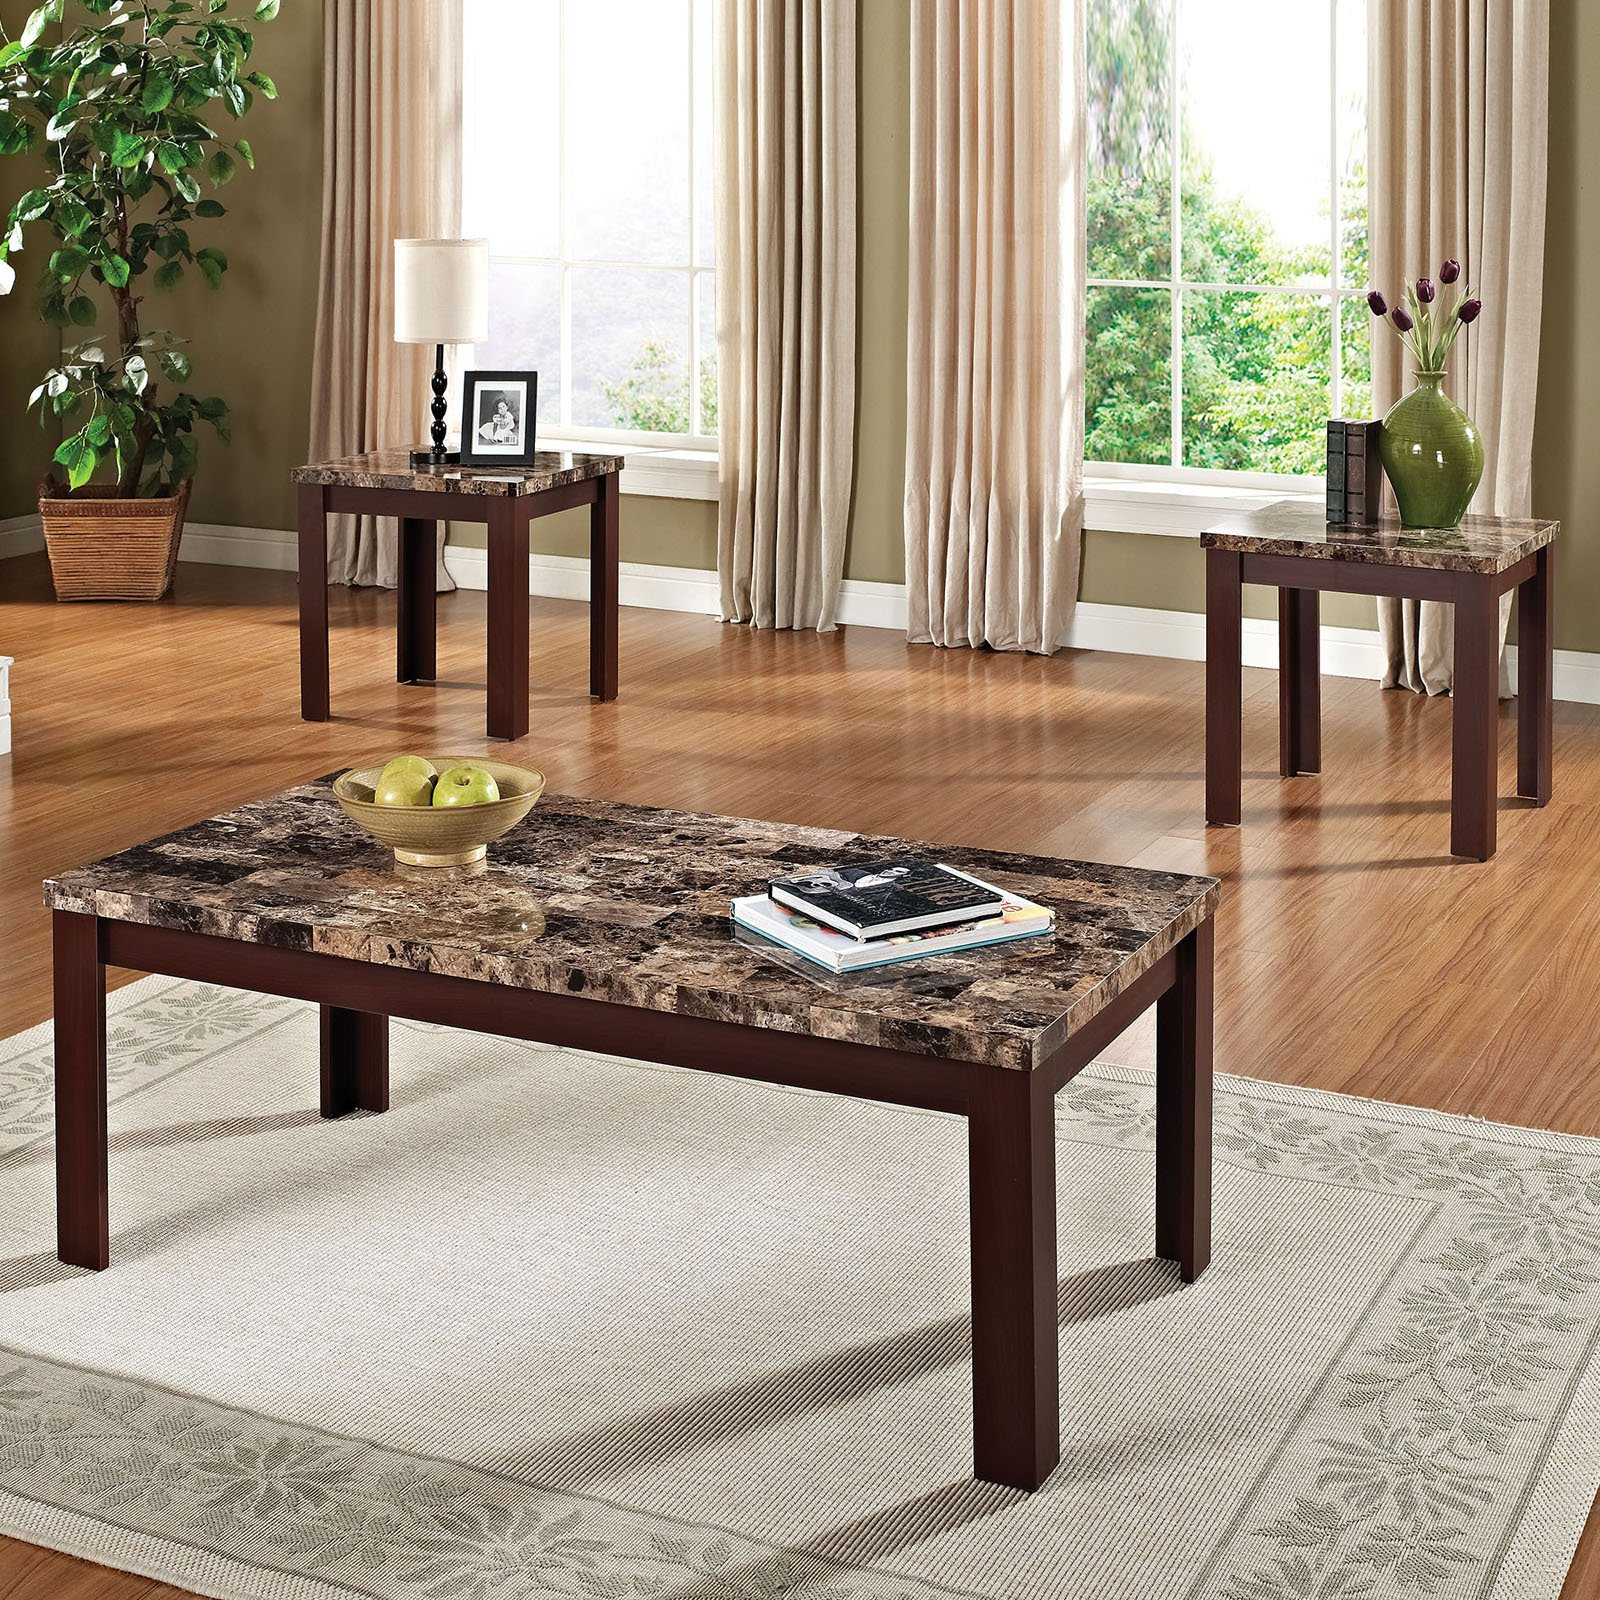 faux marble piece coffee and end table set brown cherry dark wood tables sofa company bundle lamps low grey medium dog crate ashley furniture glass kitchen large storage where